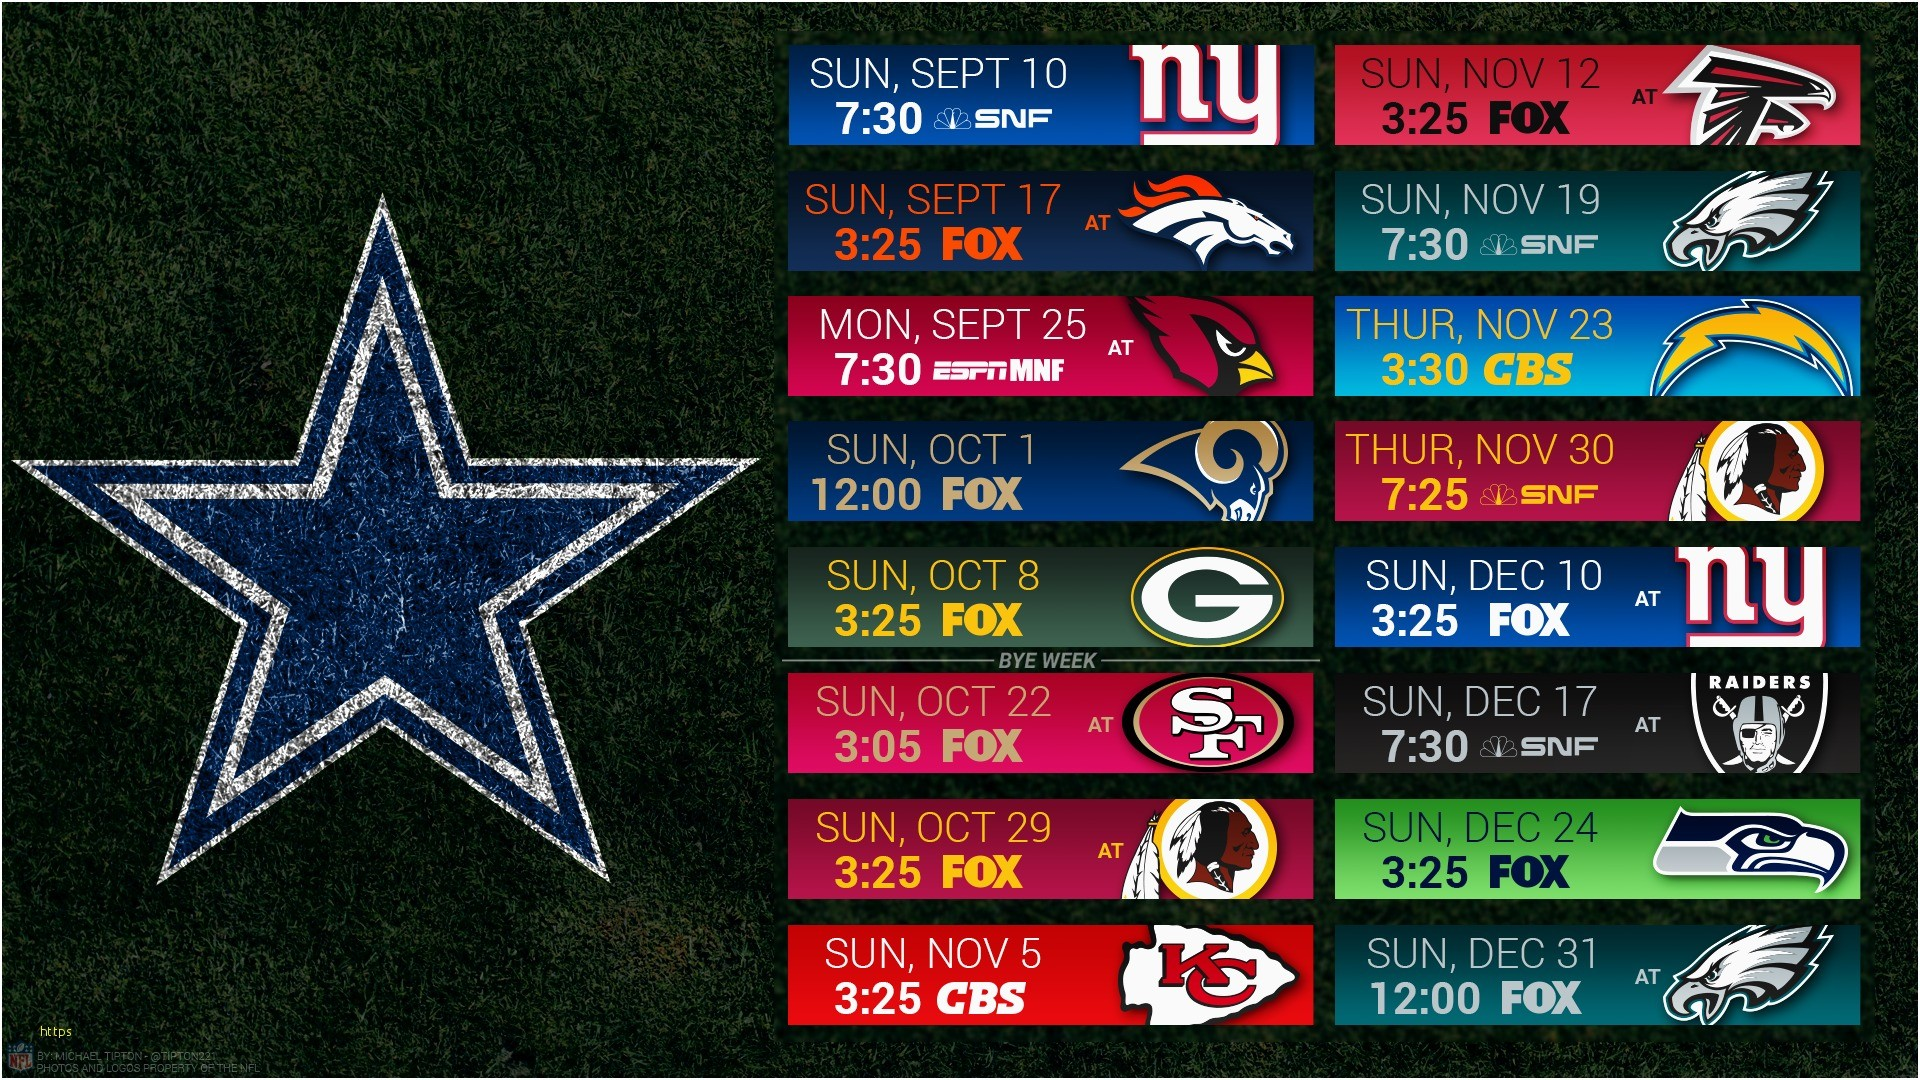 1920x1080 Dallas Cowboys Wallpaper Schedule Elegant the 2017 Nfl Schedule is Released  Cowboys Podcast